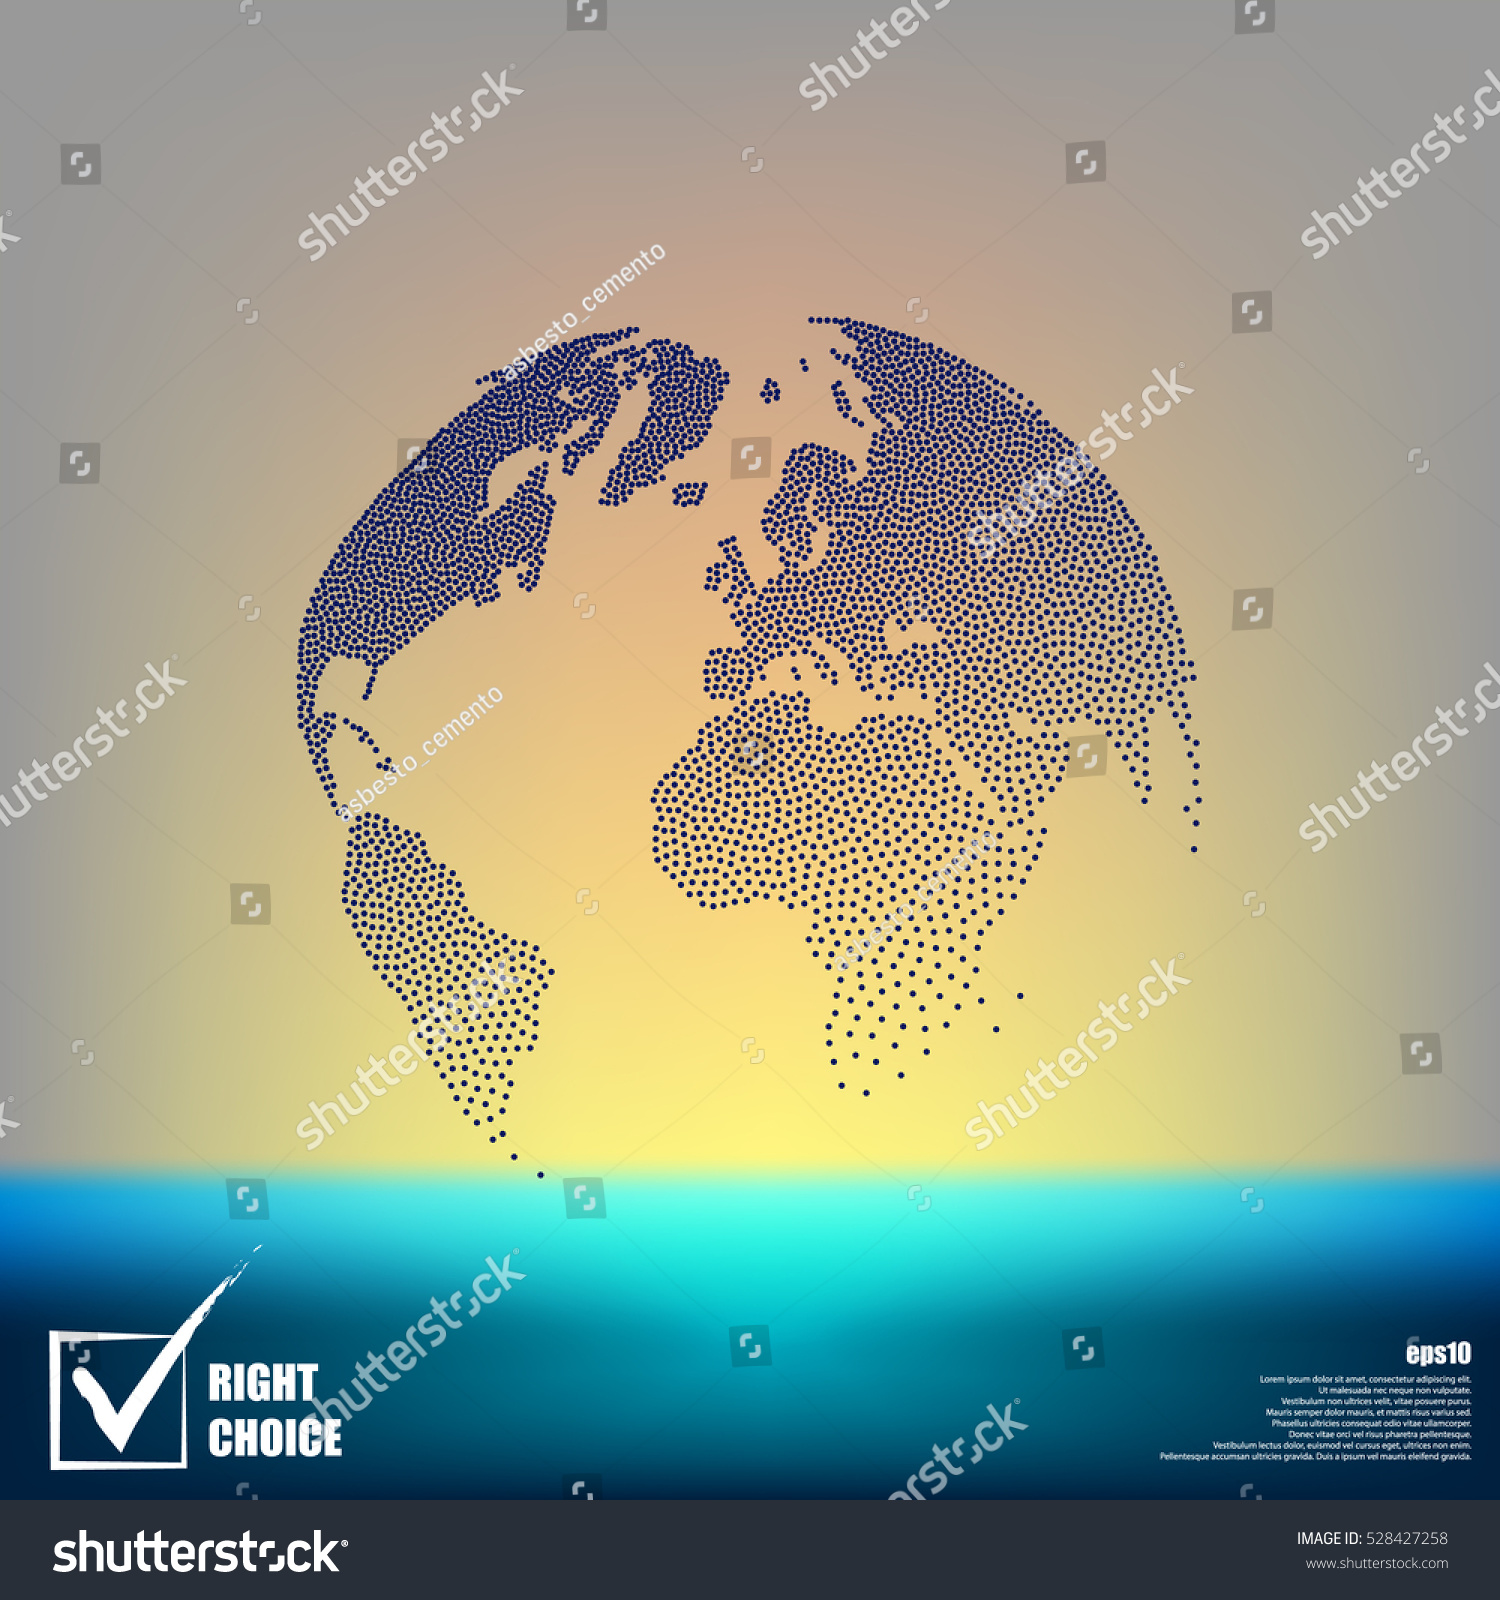 Flat paper cut style icon of globe Vector illustration